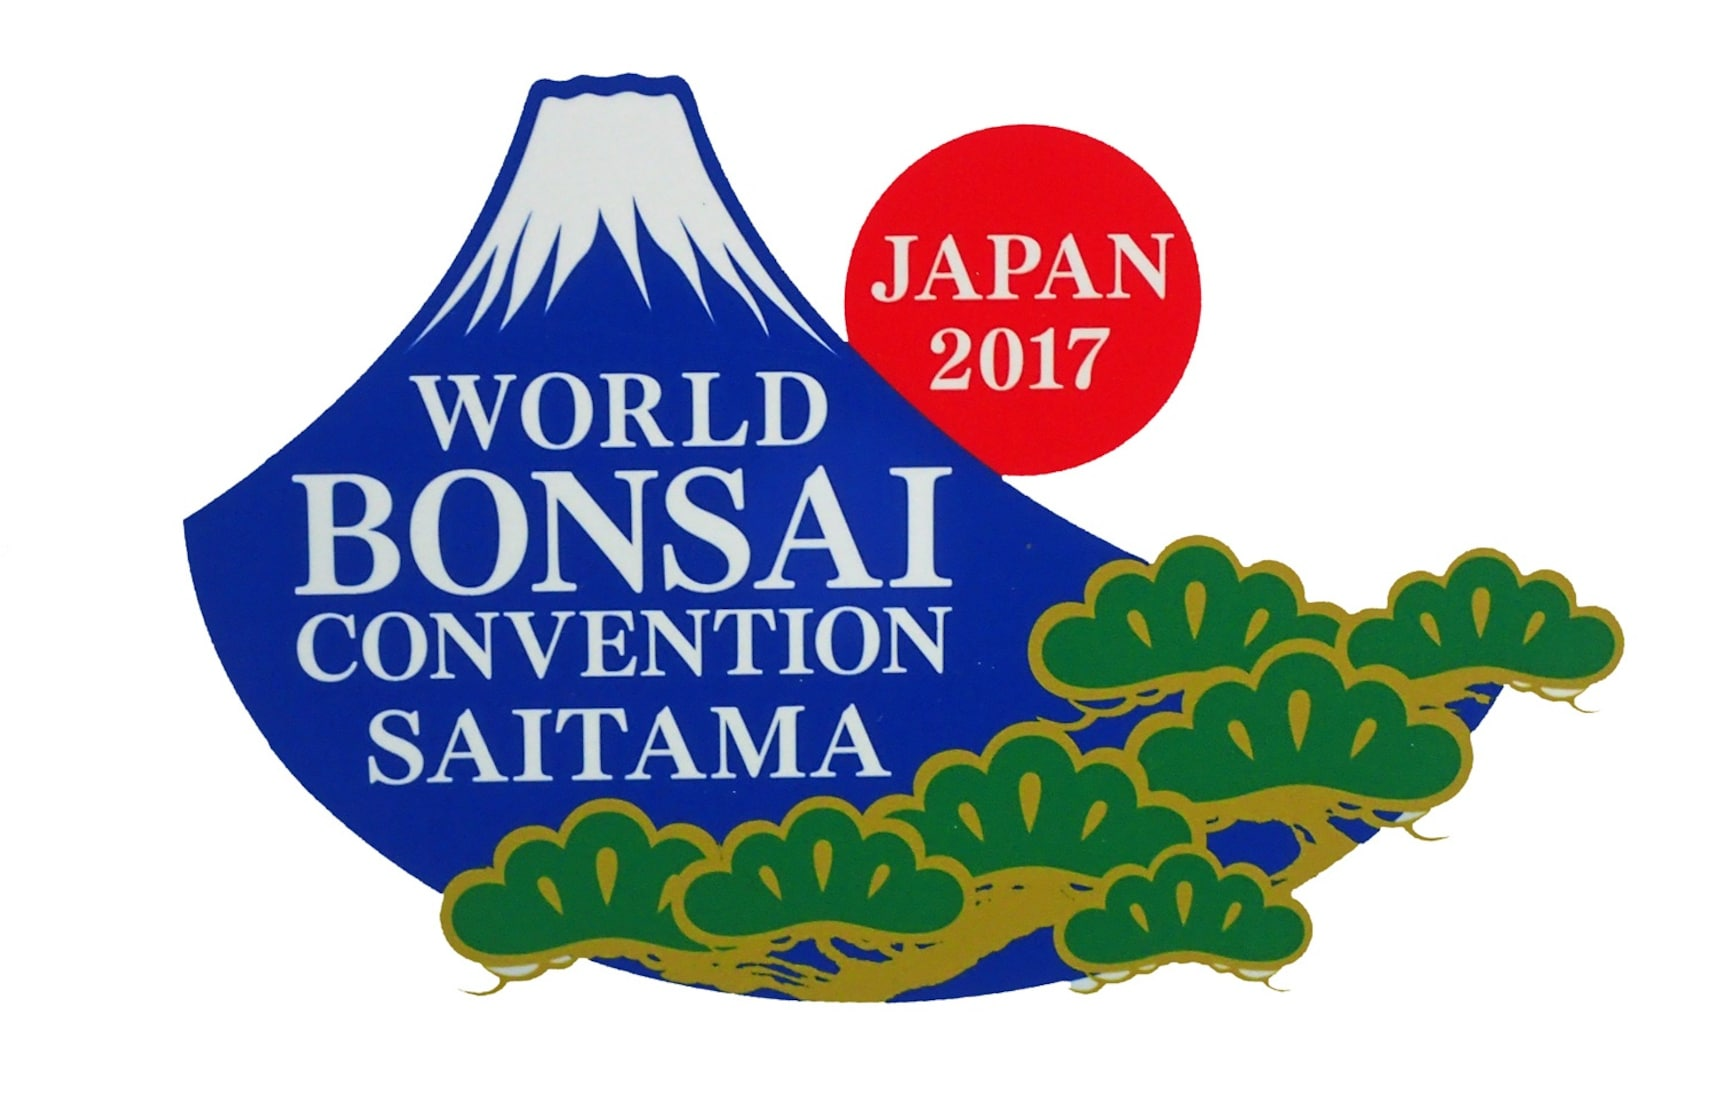 World Bonsai Convention in Saitama